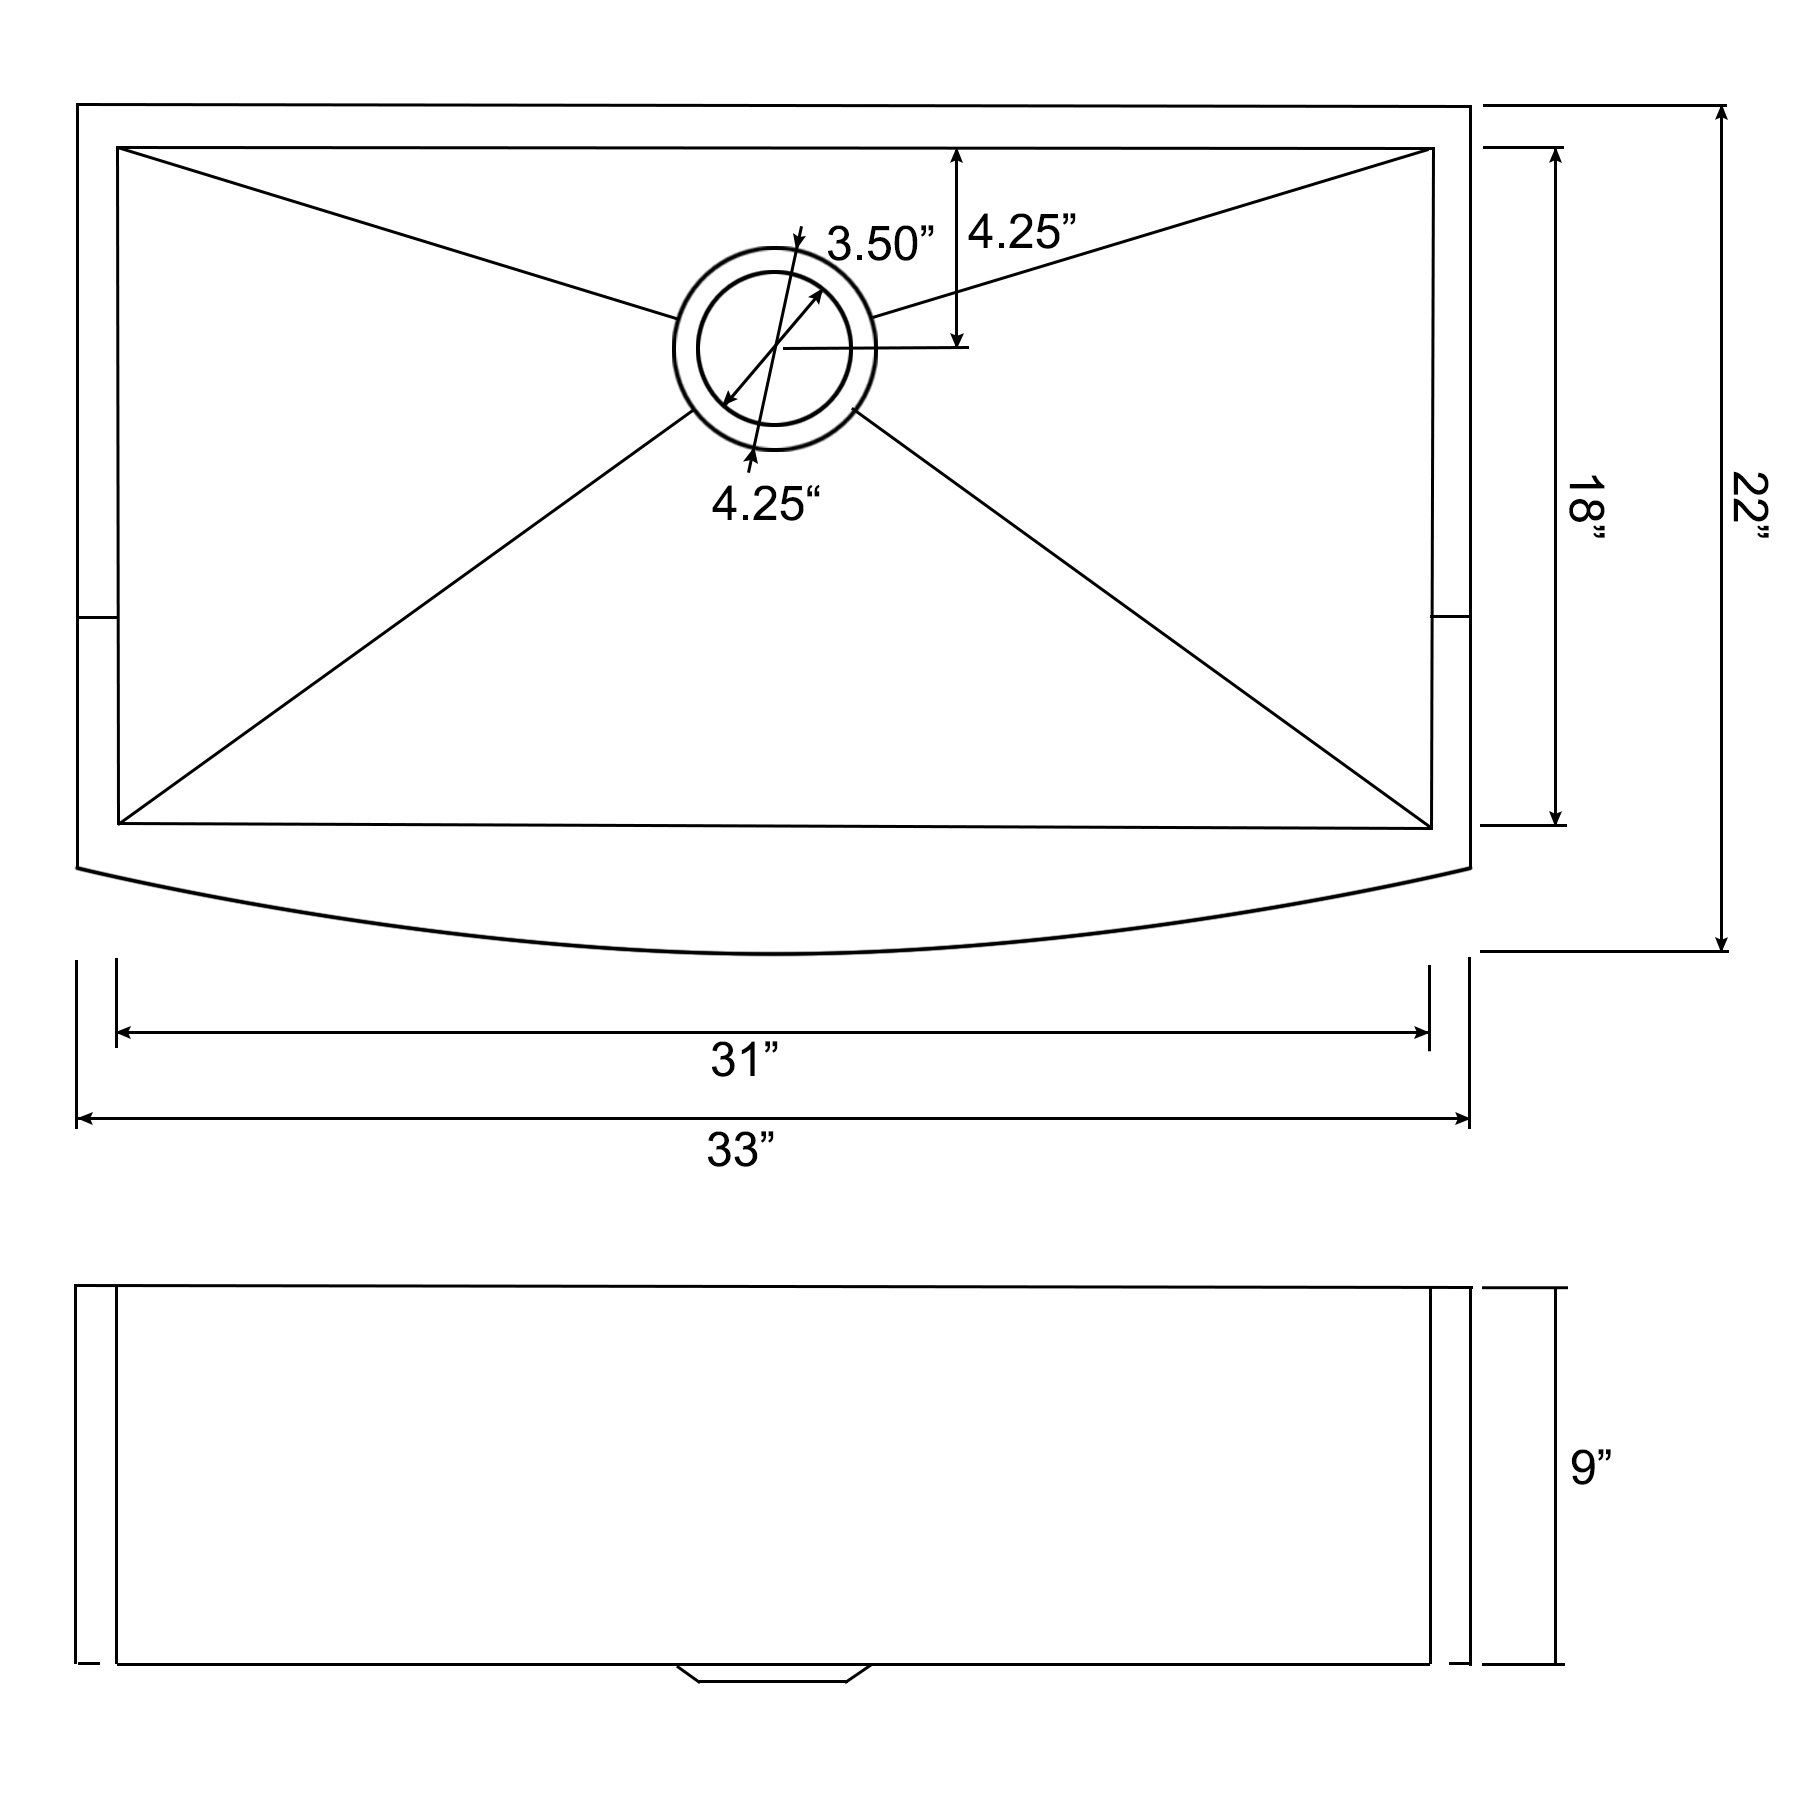 Perfetto Kitchen and Bath 33'' x 22'' x 9'' Apron Undermount Handmade 18 Gauge Stainless Steel Single Basin Kitchen Sink w/ Dish Grid & Drain Combo by Perfetto Kitchen and Bath (Image #2)